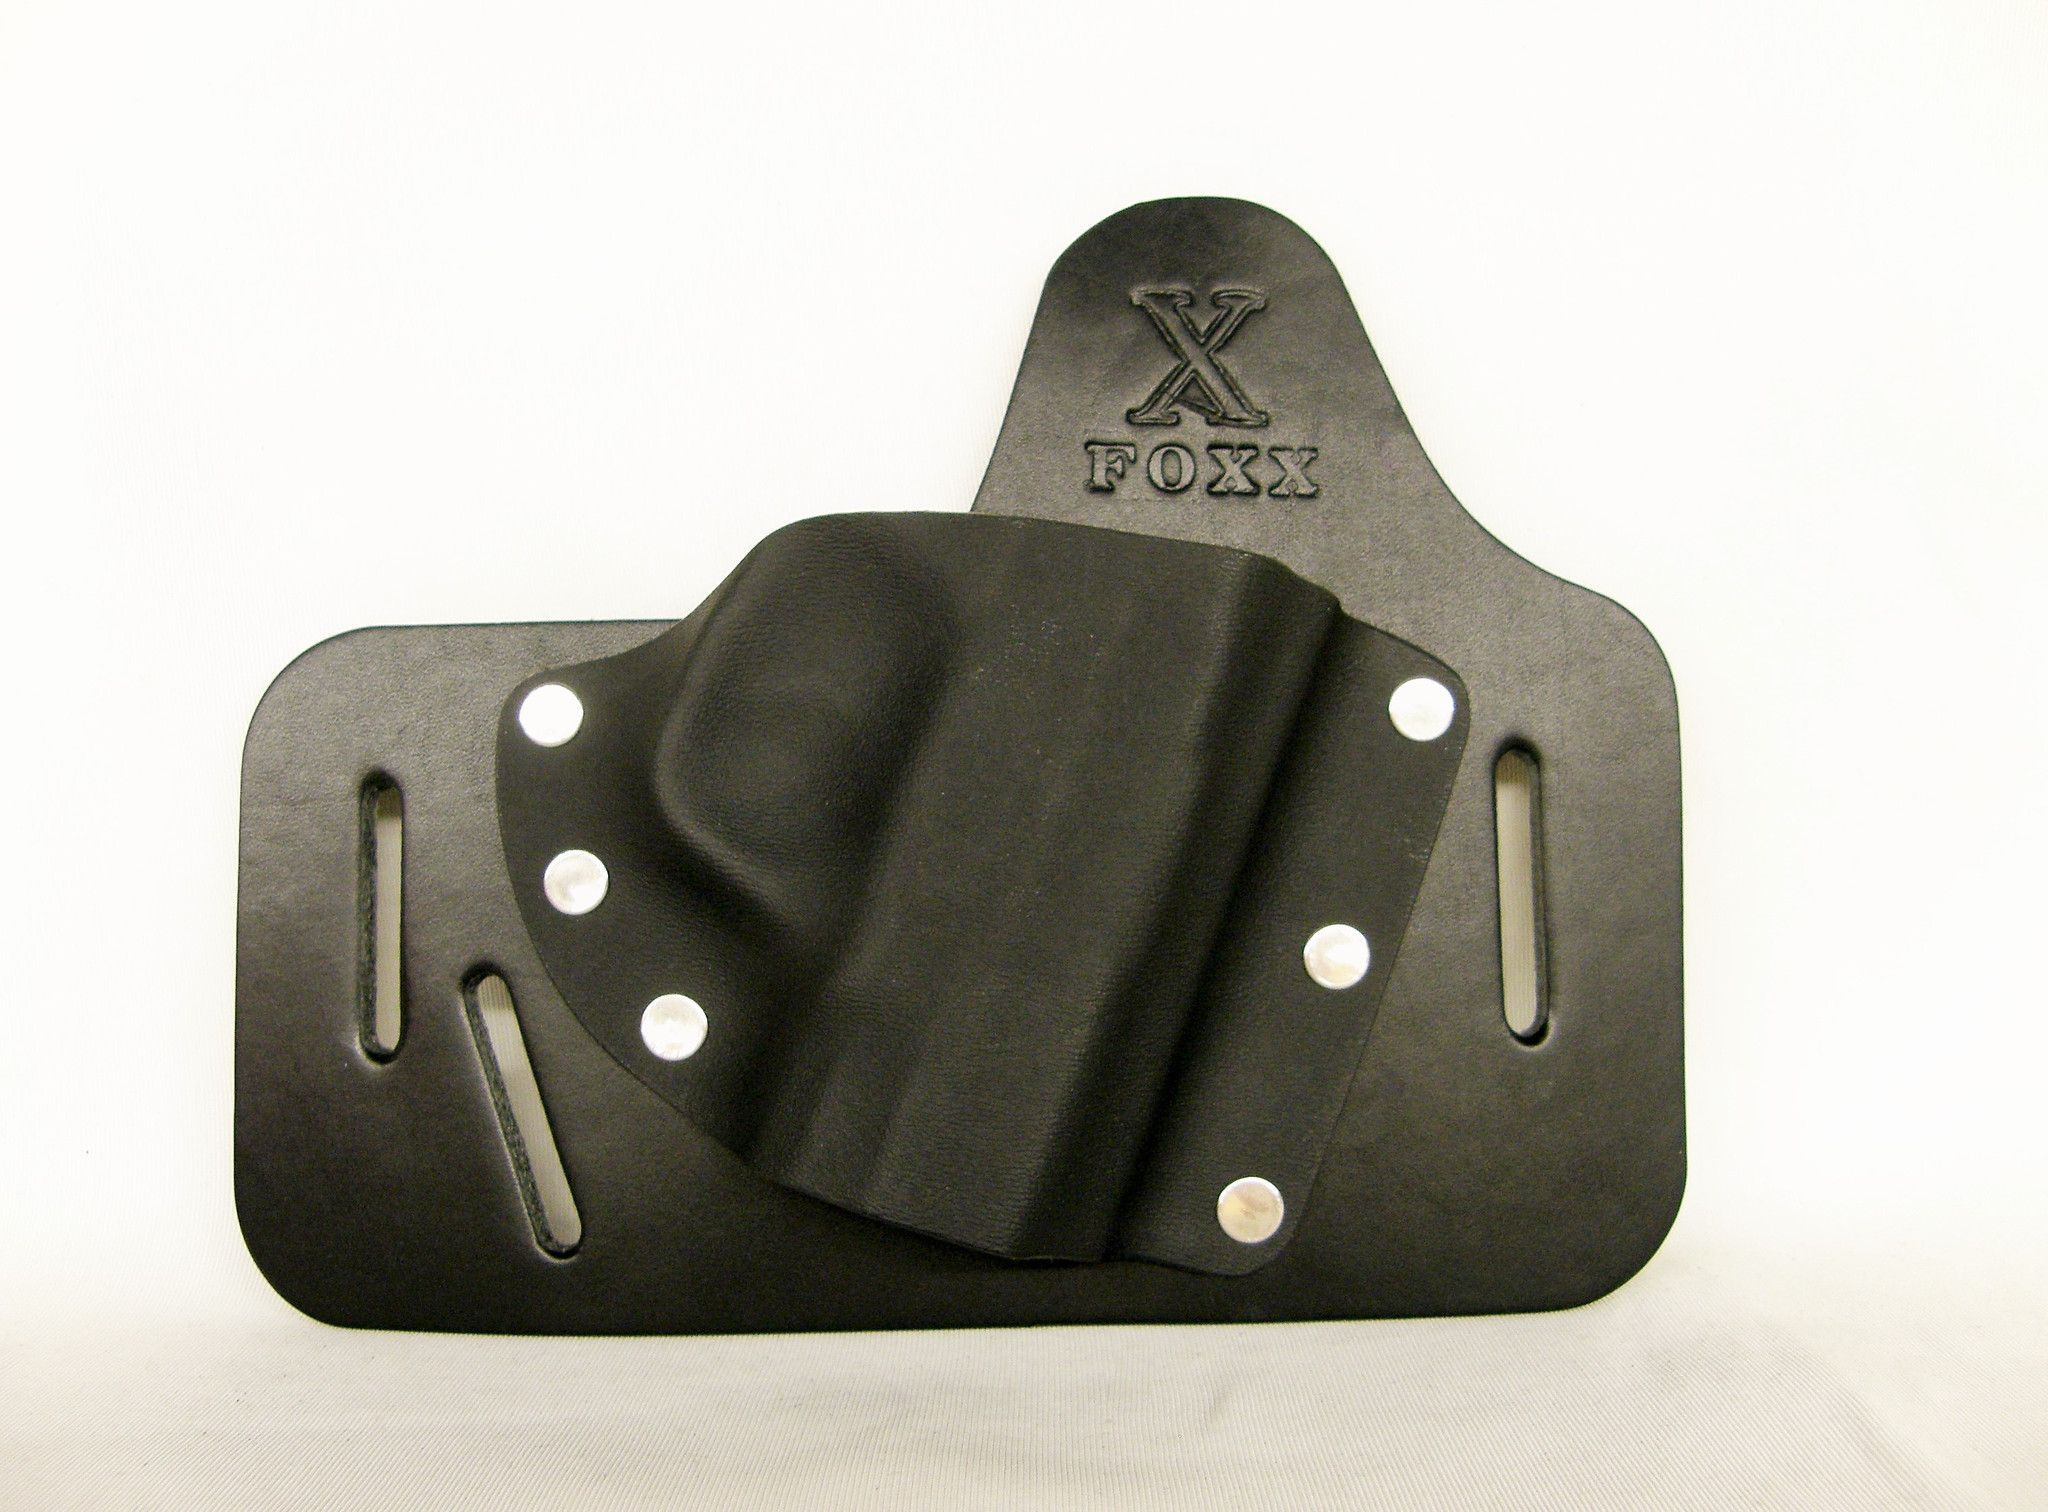 Foxx Holsters NEW Adjustable Outside the Waistband Hybrid Holster